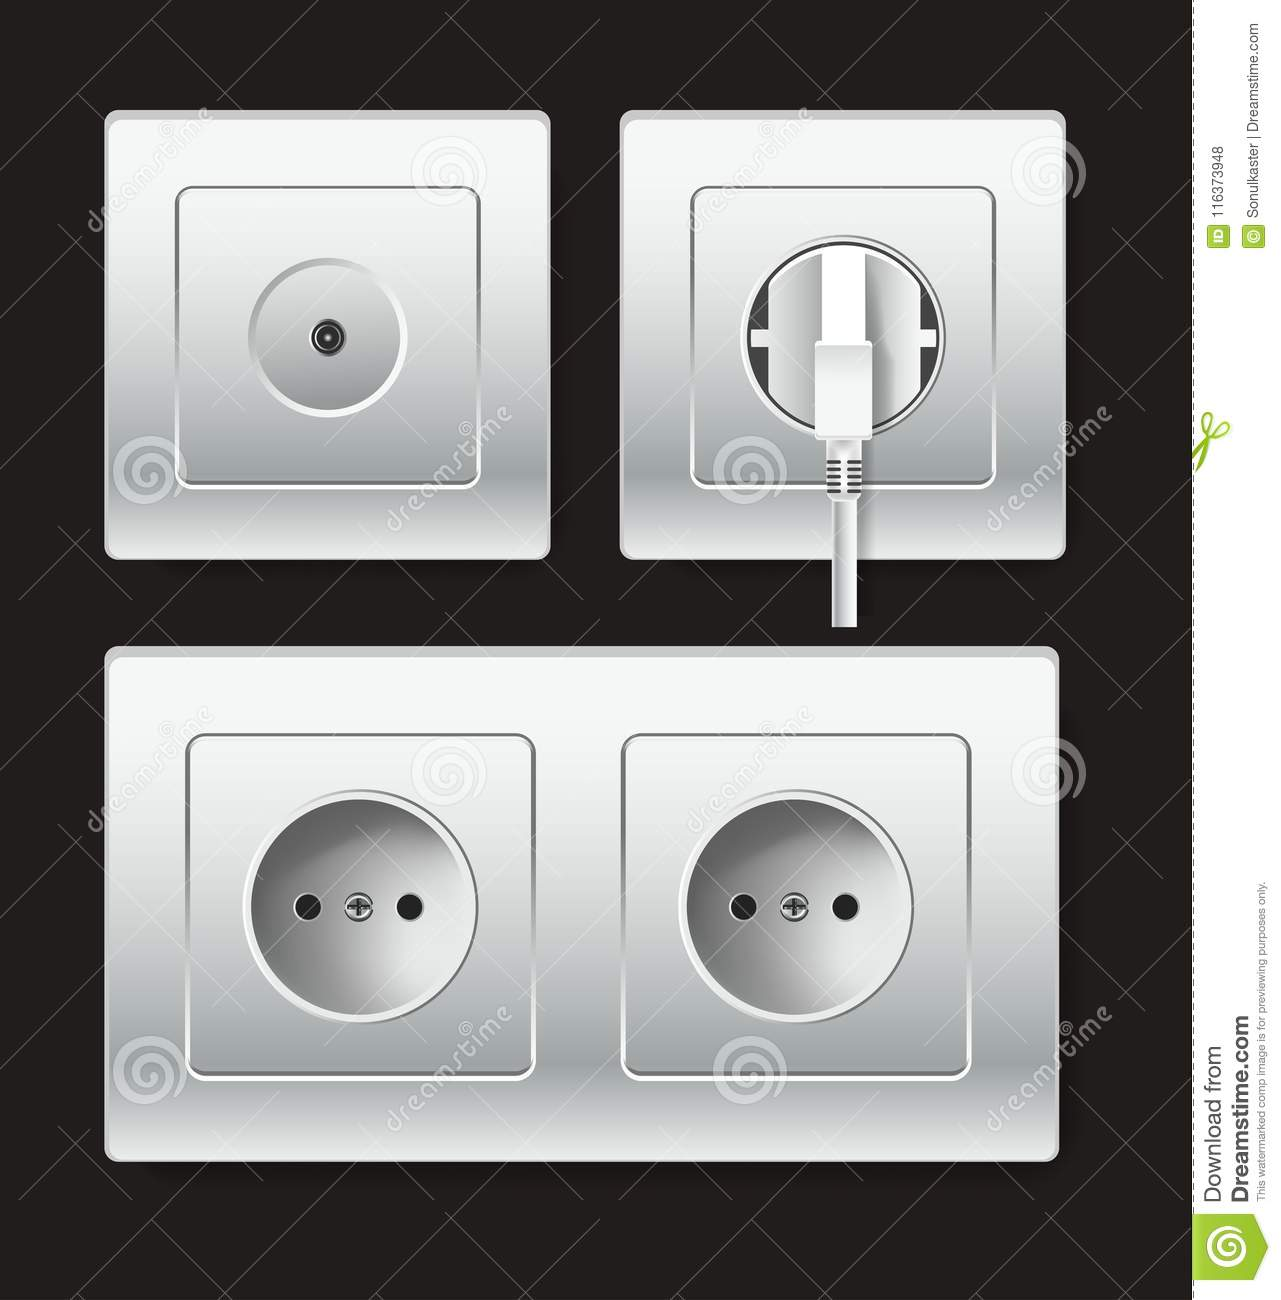 Sockets Types Or Electric Plug Outlets Vector Icon Stock Vector ...